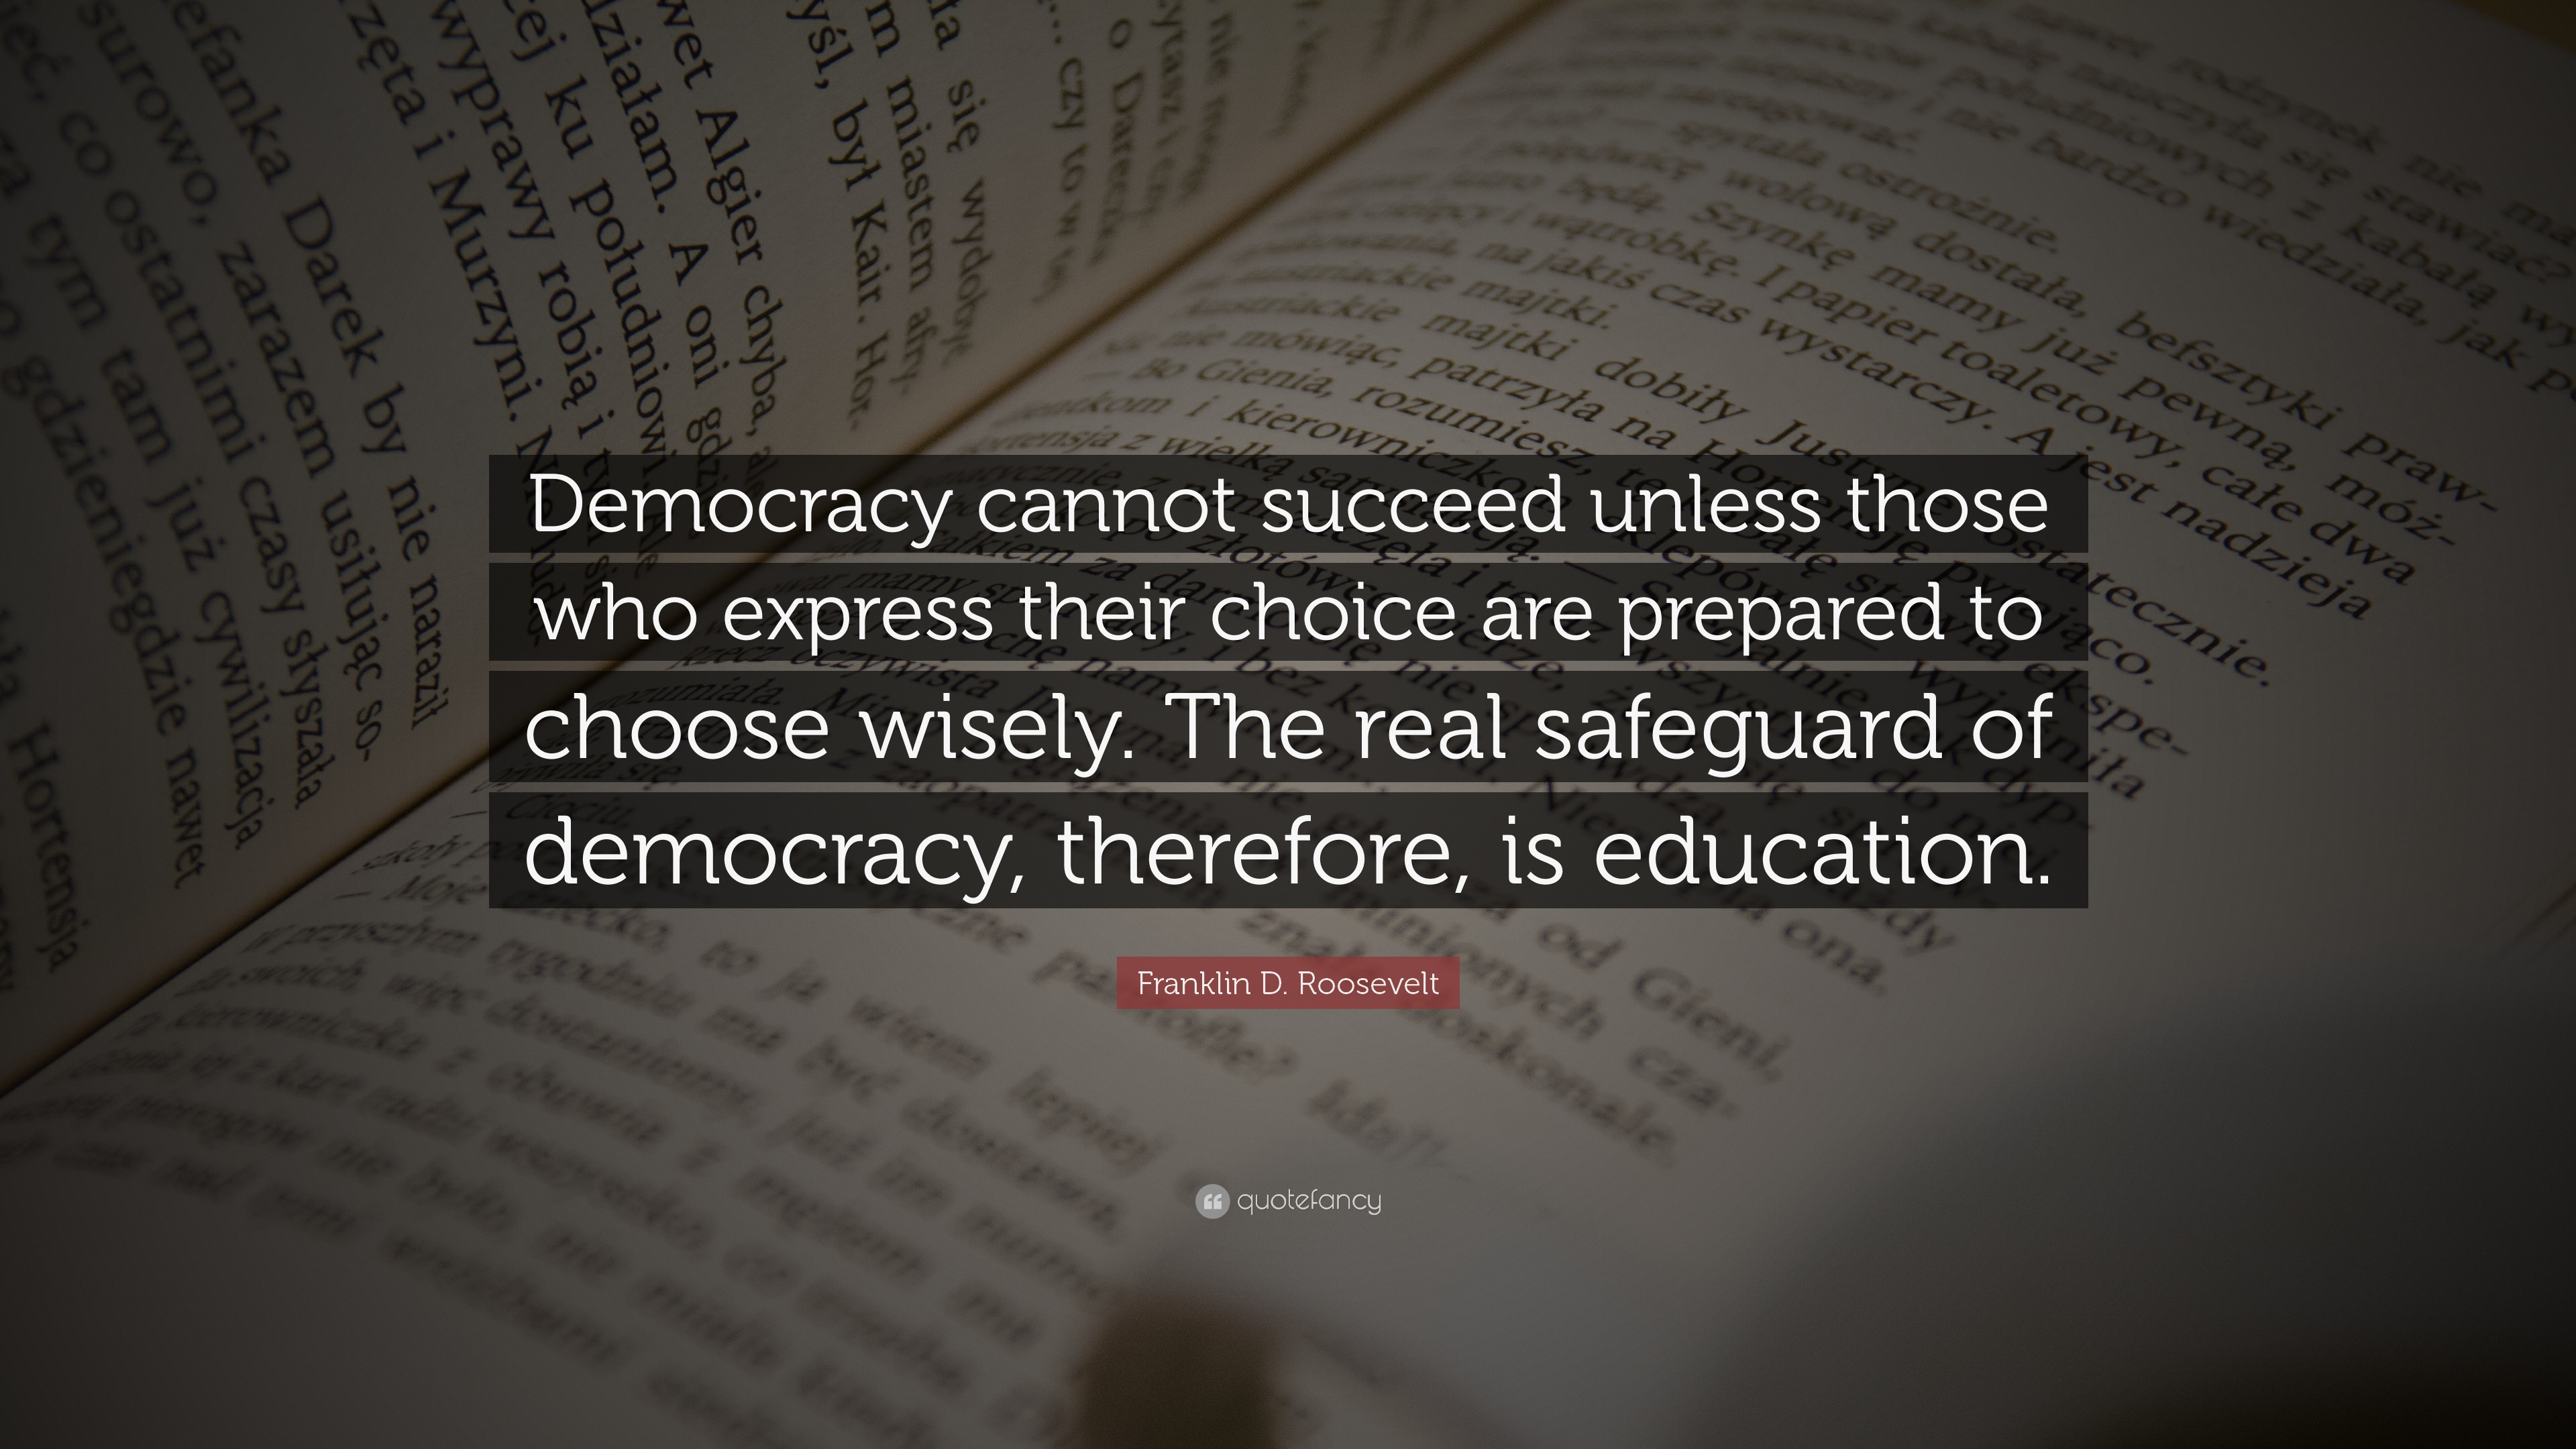 Quote of the week, fdr, franlin d. roosevelt, quote, quotes, quote of the day, democracy, USA, America, elections, 2020, americam election, joe biden, kamala harris, democracy cannot succeed unless those who express their choice are prepared to choose wisely. The real safeguard of democracy, therefore, is education, aspasiasbissas.com